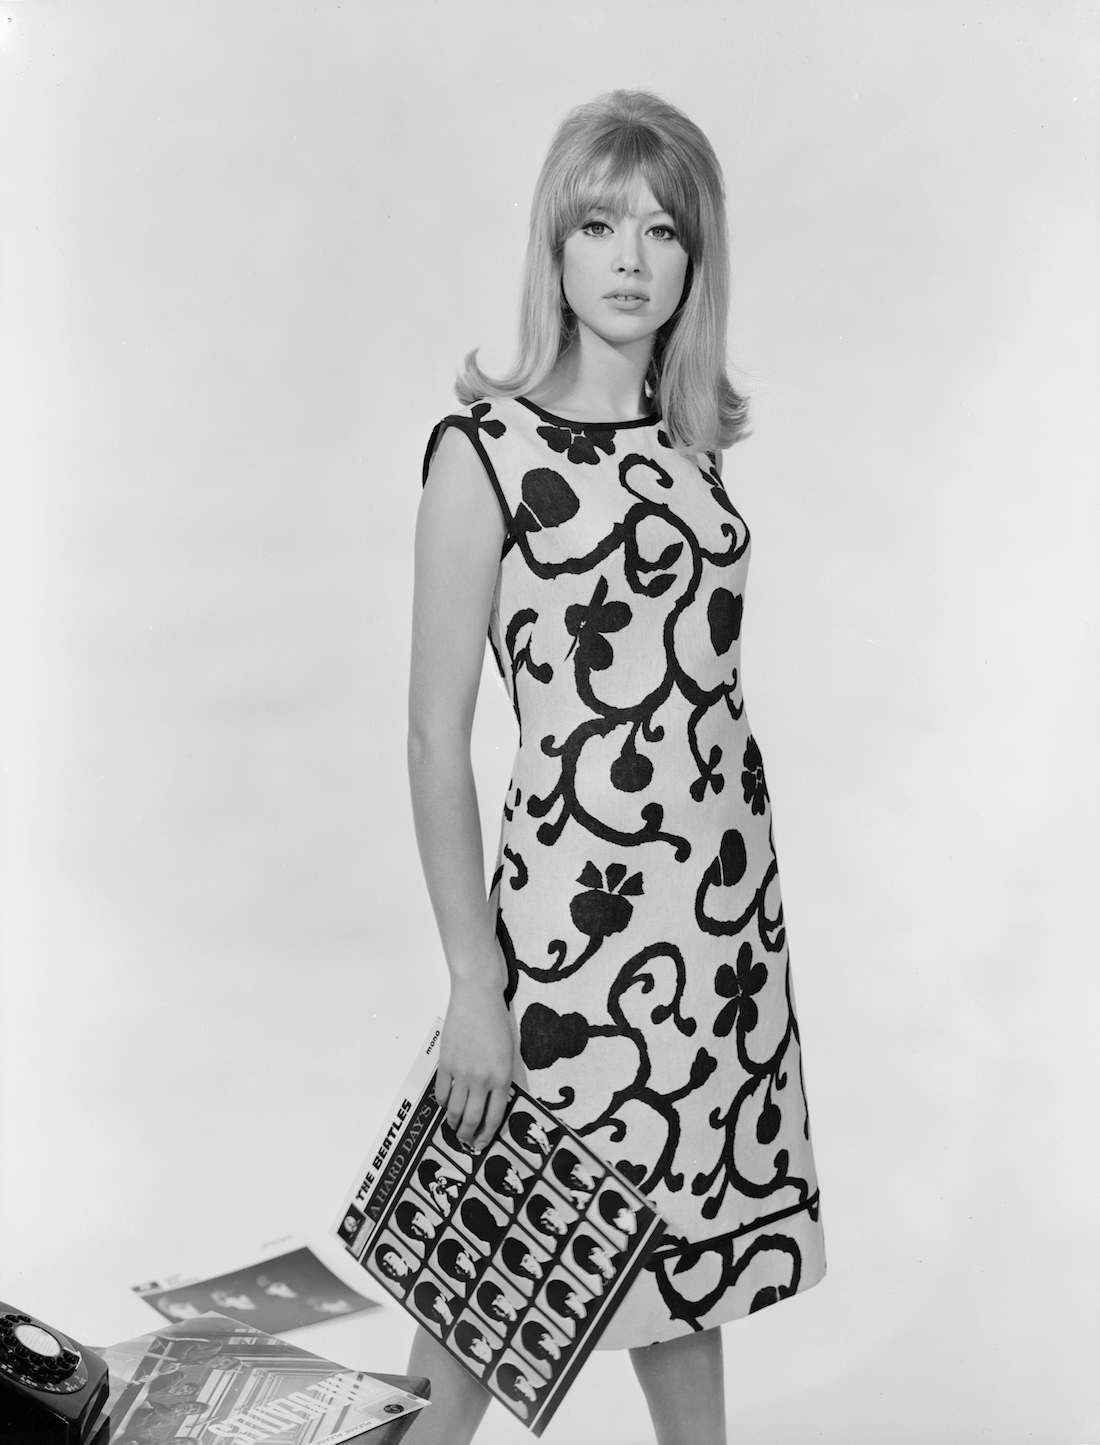 1964: Patti Boyd models a Brilkie sleeveless sheath dress with a large, stylised floral pattern. She is holding the Beatles album 'A Hard Day's Night'. (Photo by Chaloner Woods/Getty Images)